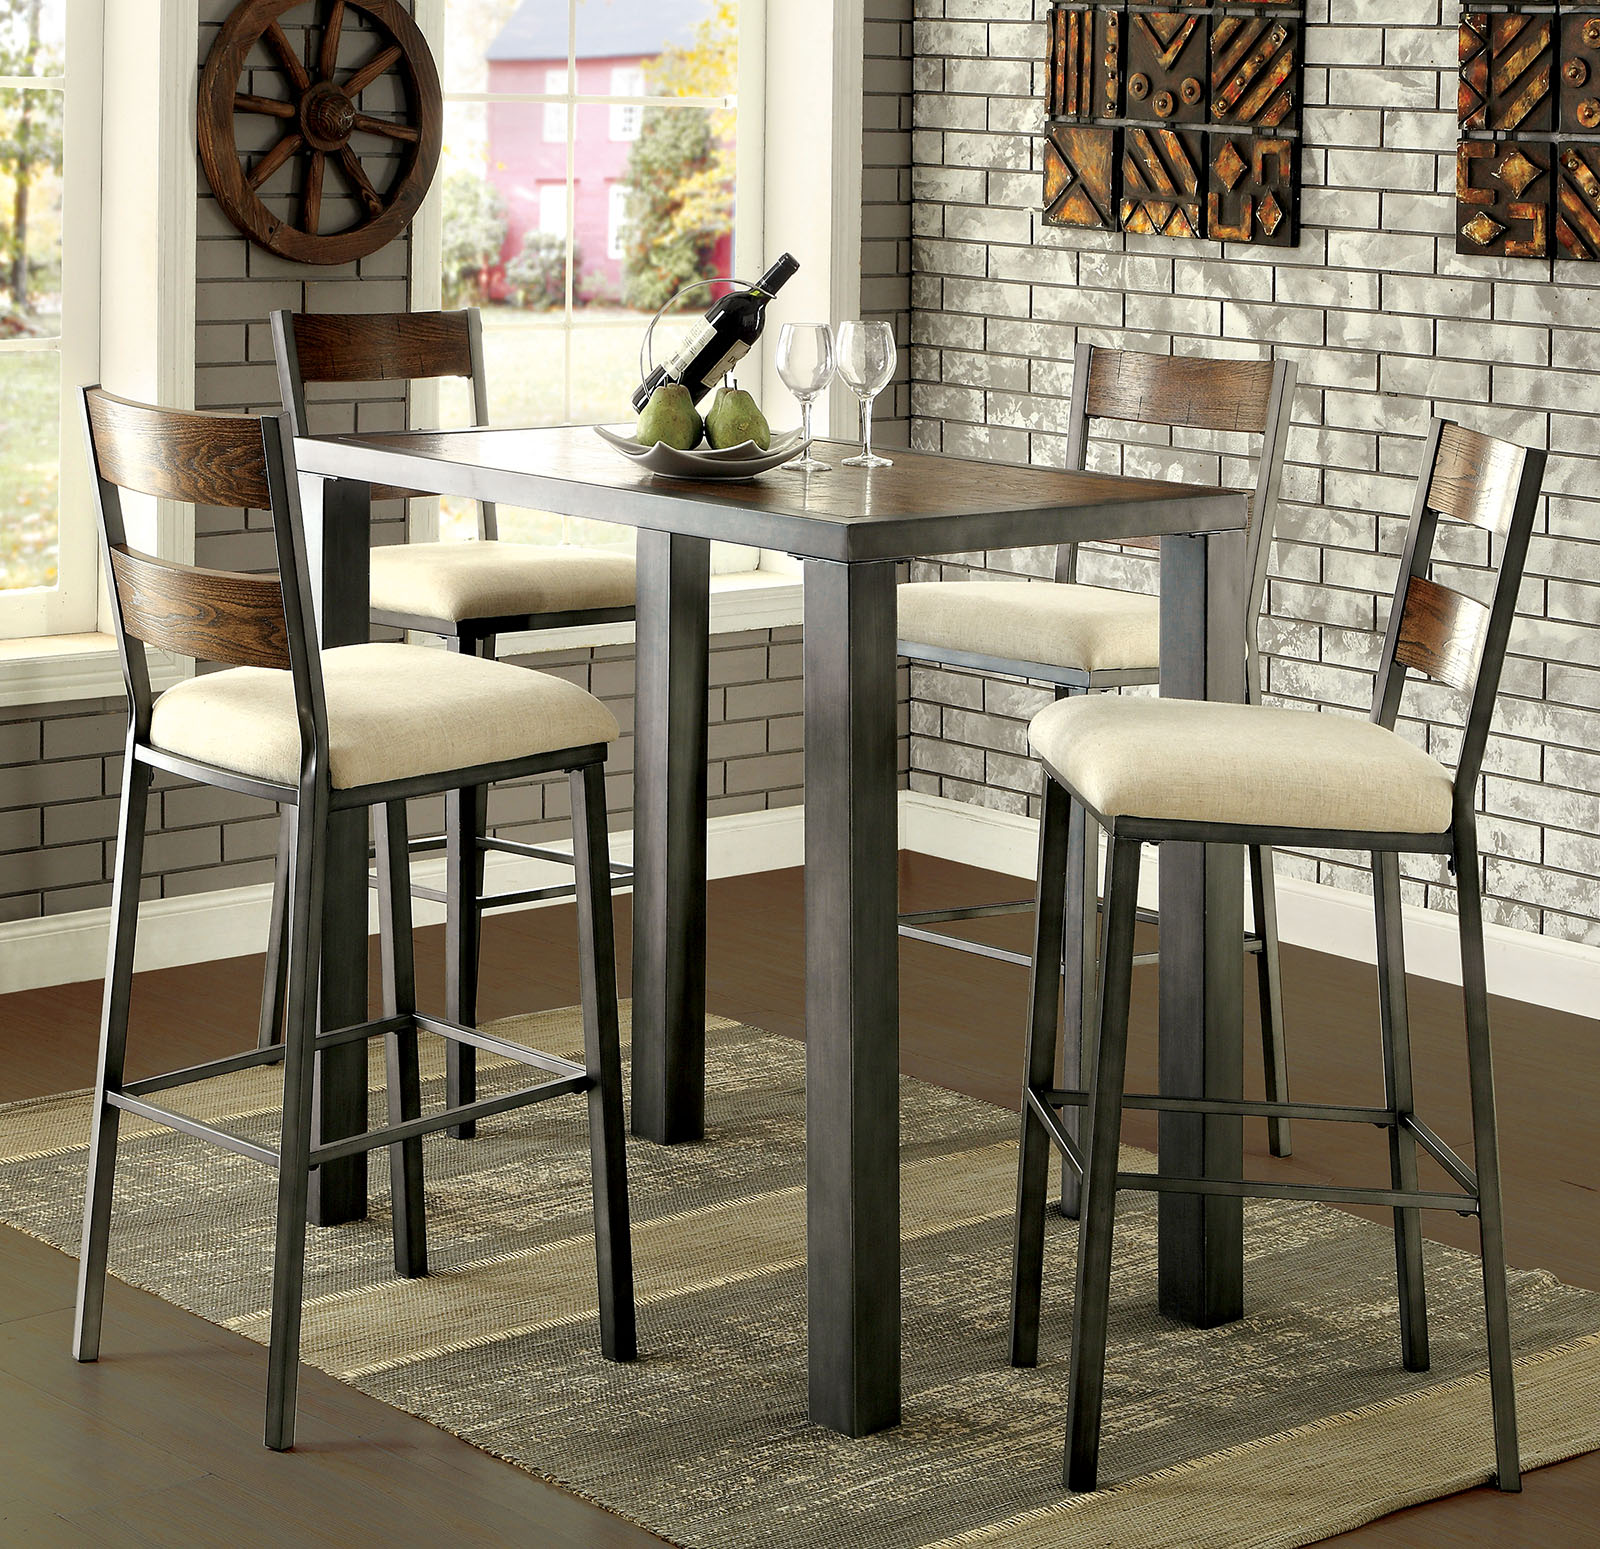 Jazlyn II Industrial Bar Table Collection